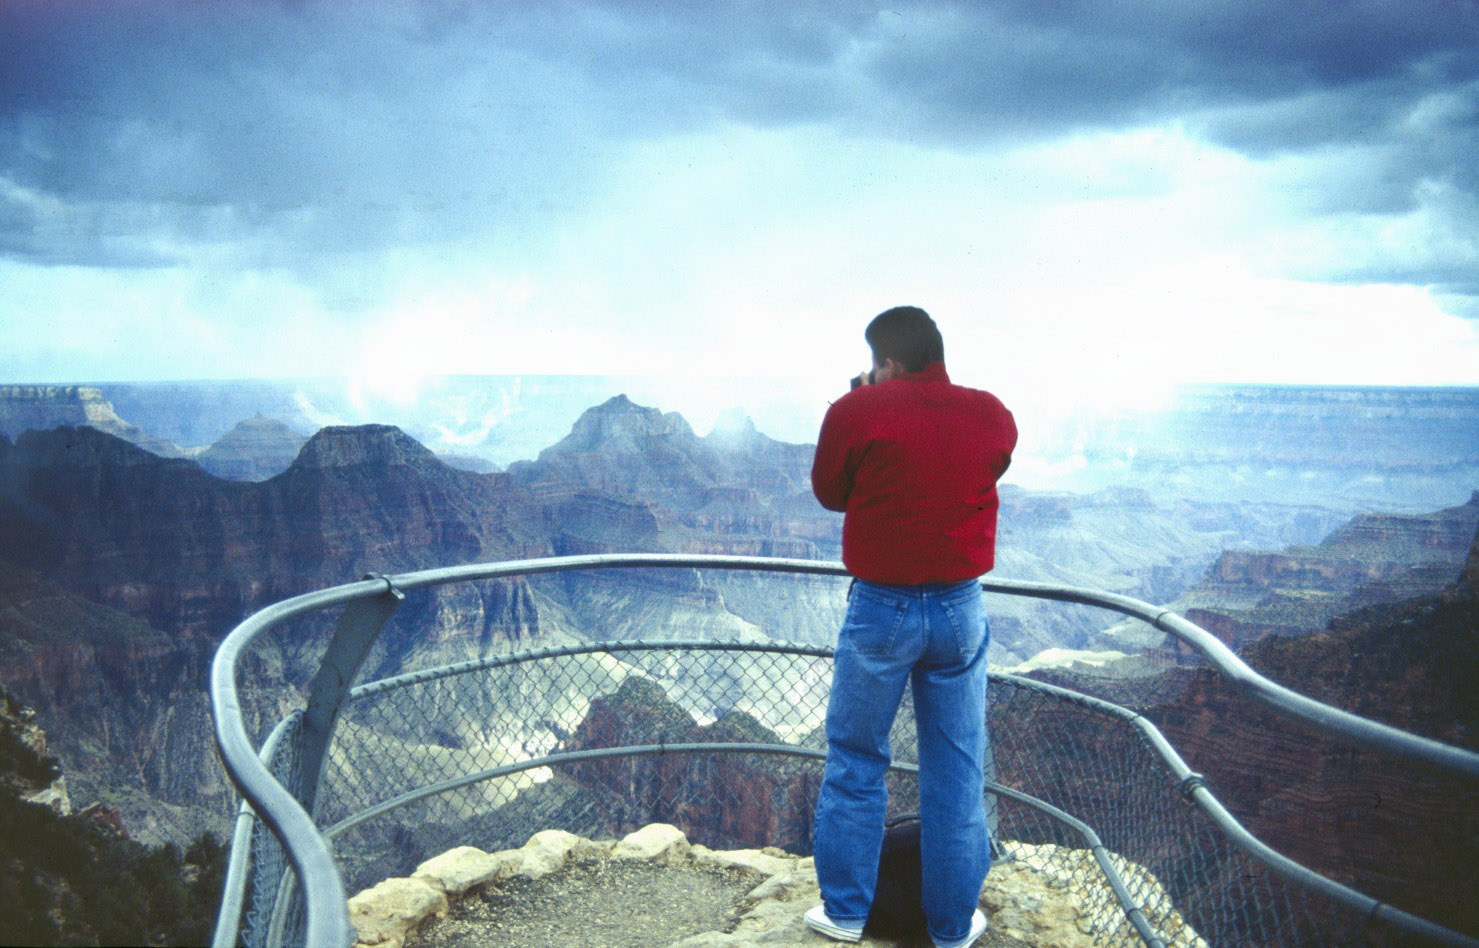 Man in red jacket photographing dramatic landscape